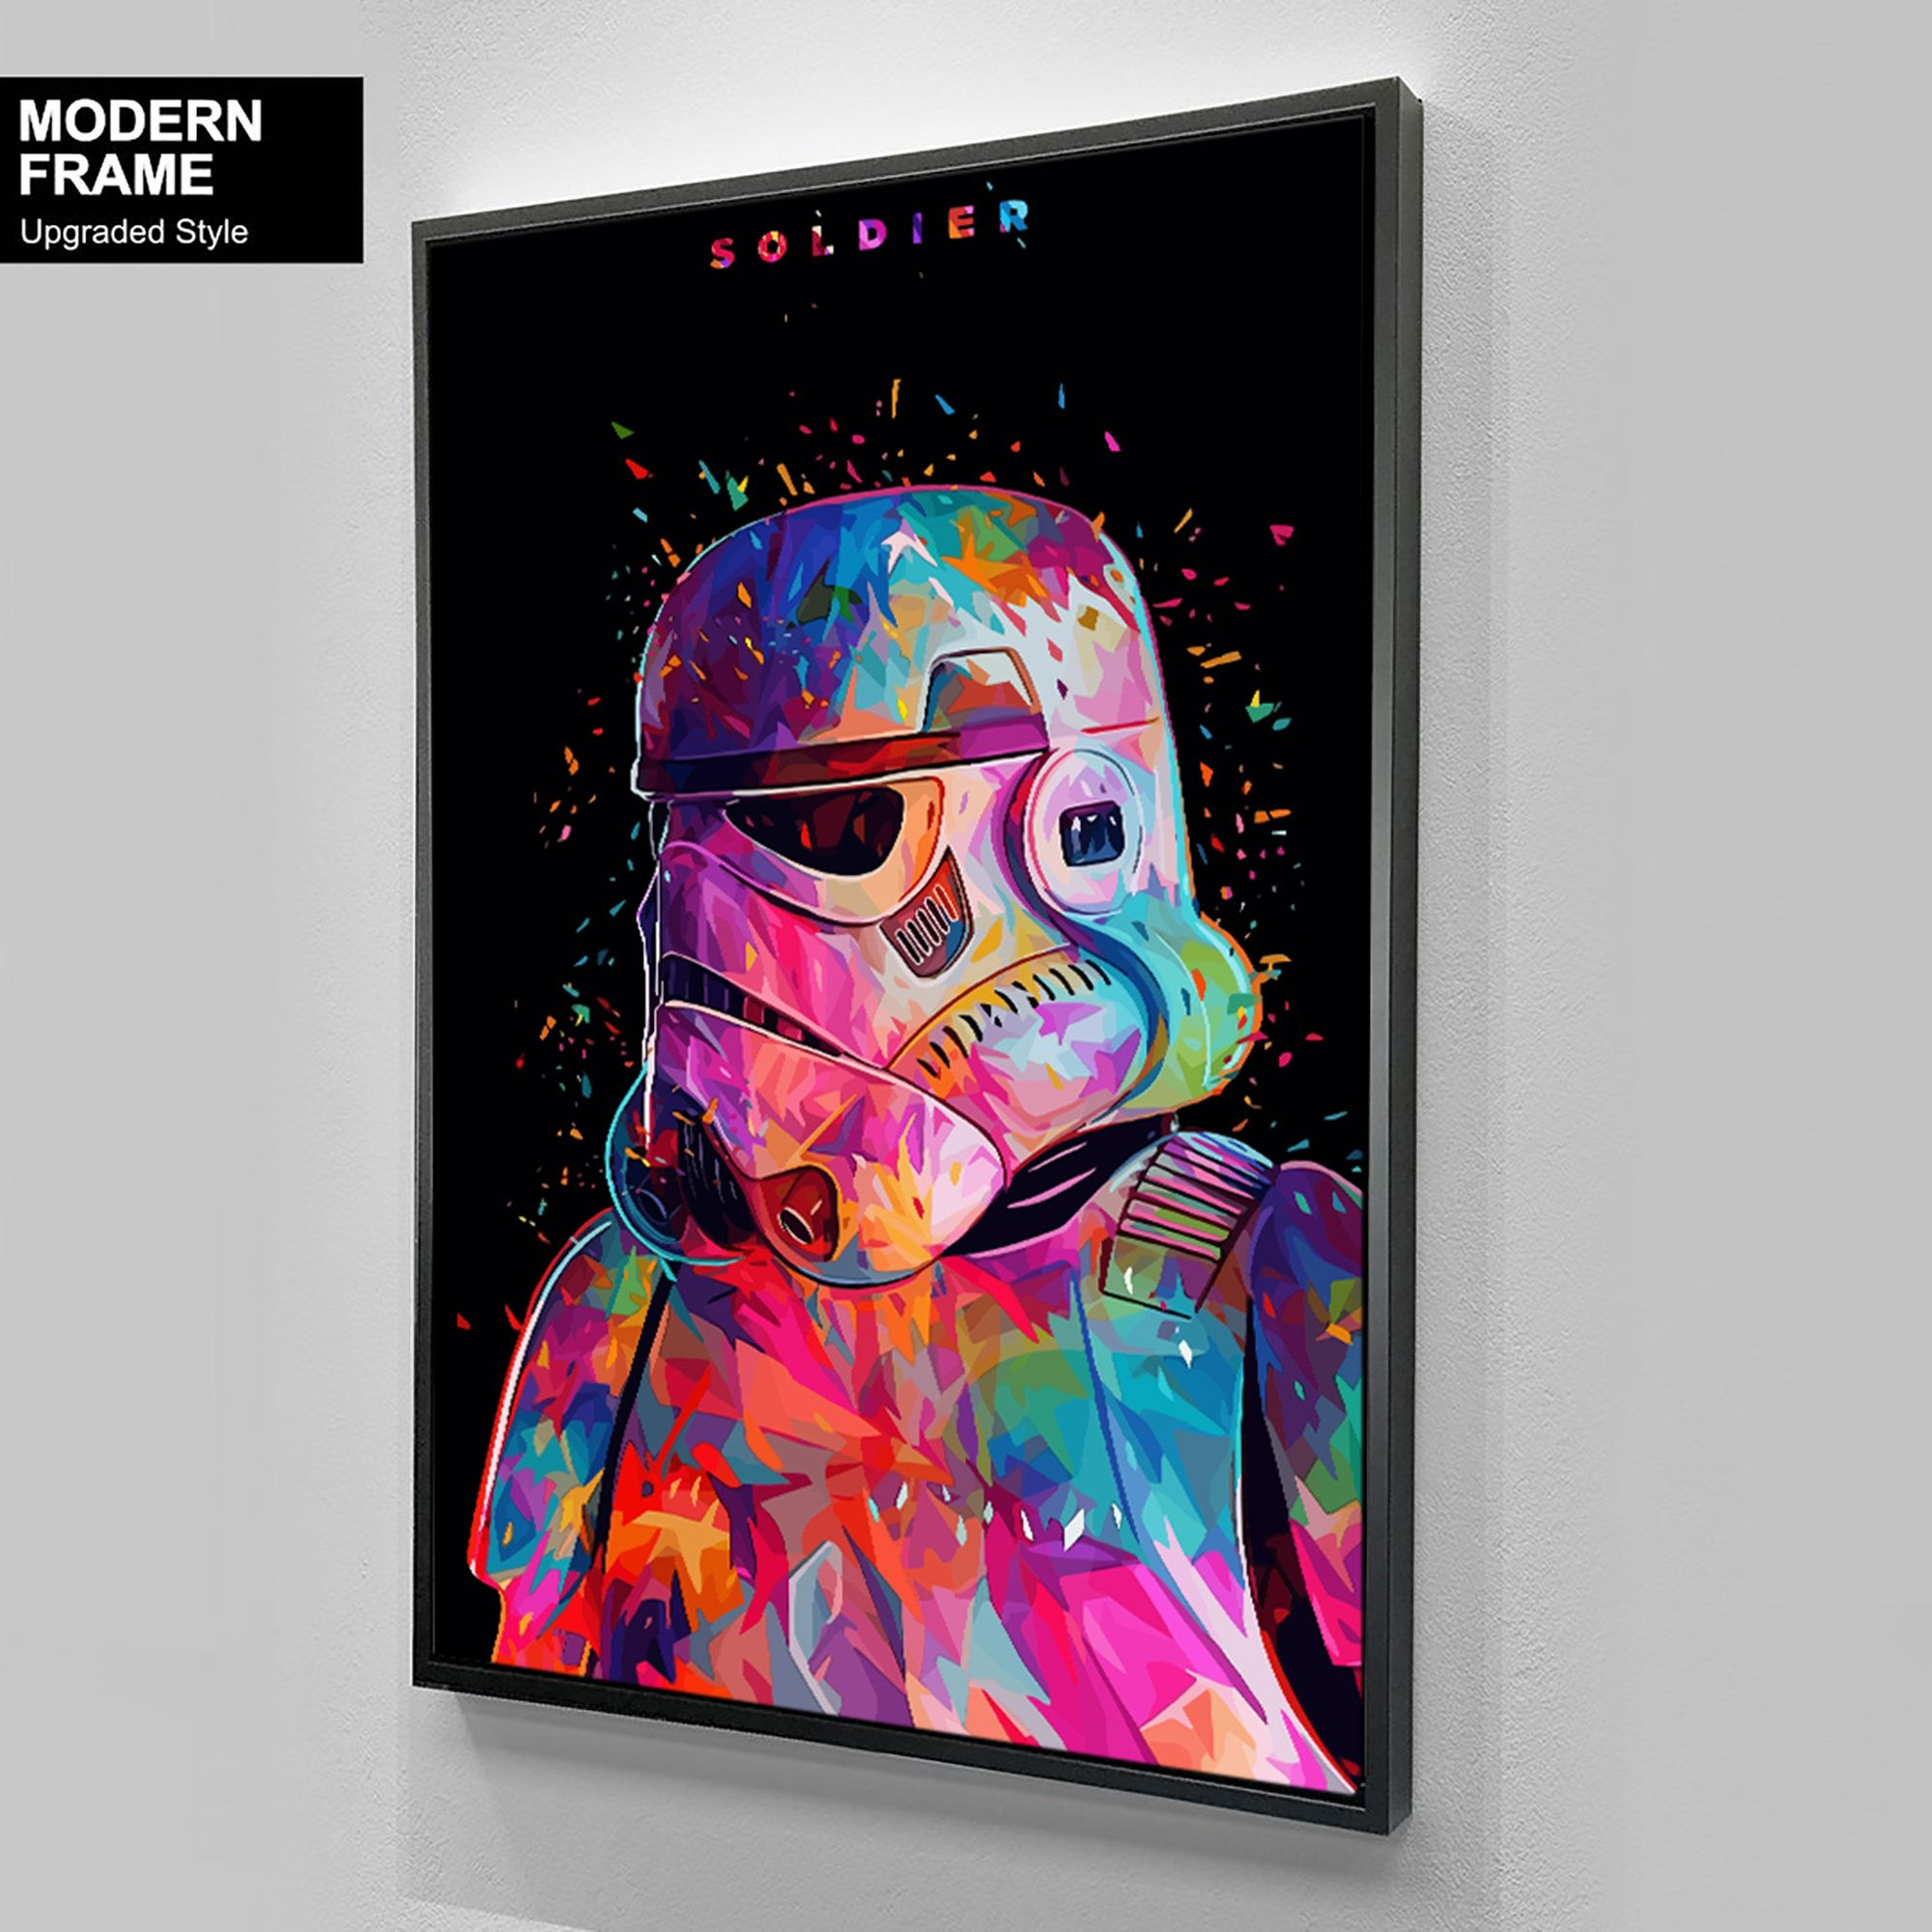 Soldier Minimalist Art Star Wars Darth Vader Stormtrooper Print Poster Decoration Pictures Wall Art Decor In 2020 Boba Fett Wall Art Movie Wall Art Minimalist Art